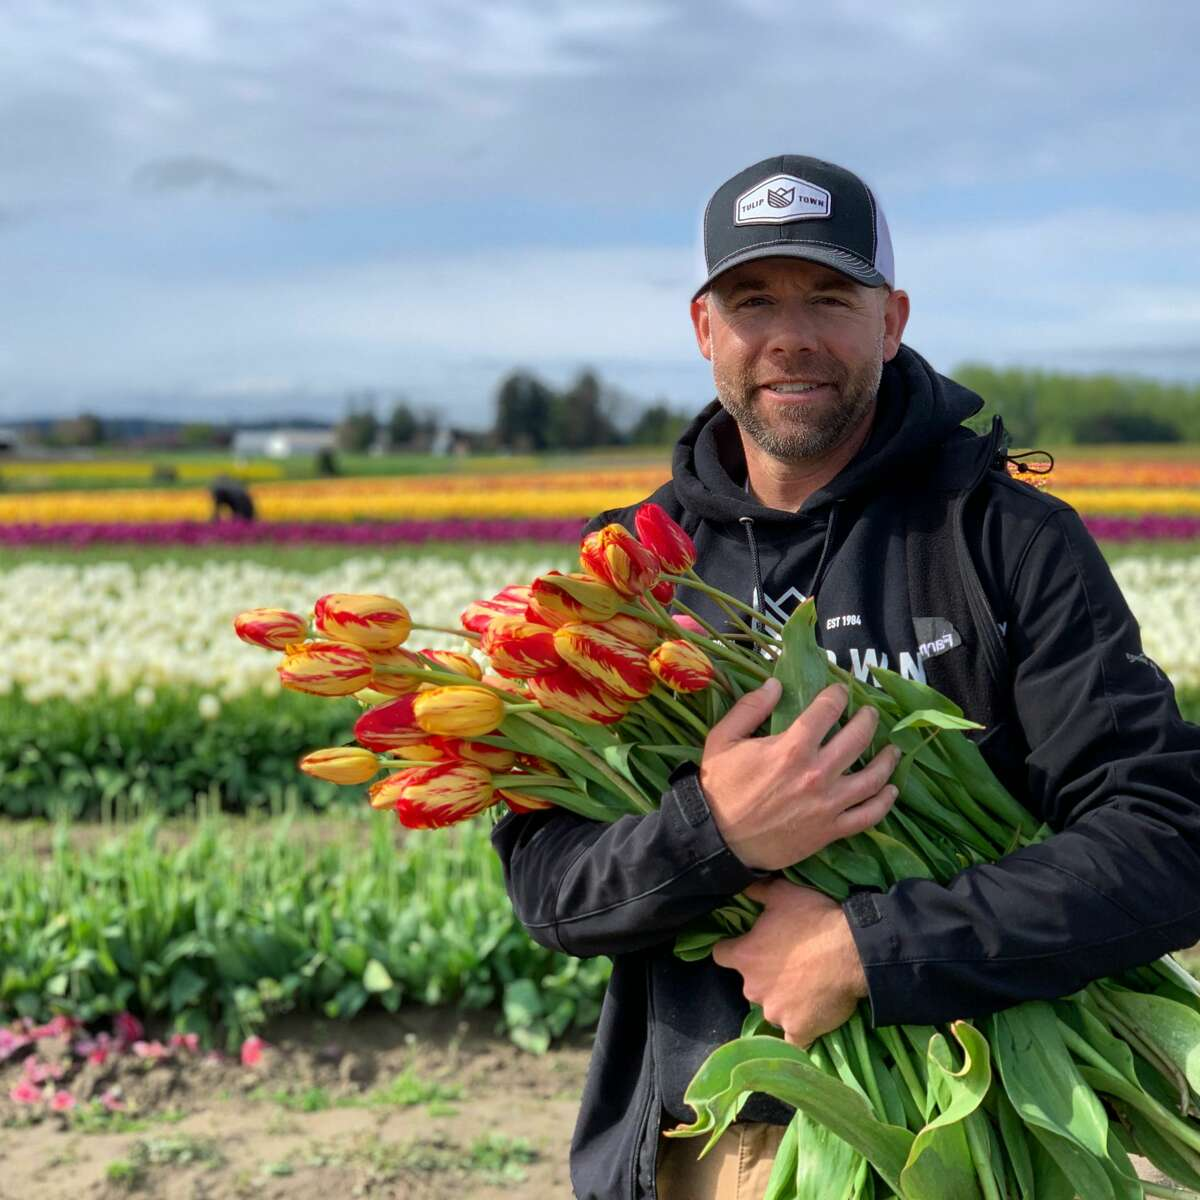 Andrew Miller collects tulips across Tulip Town.